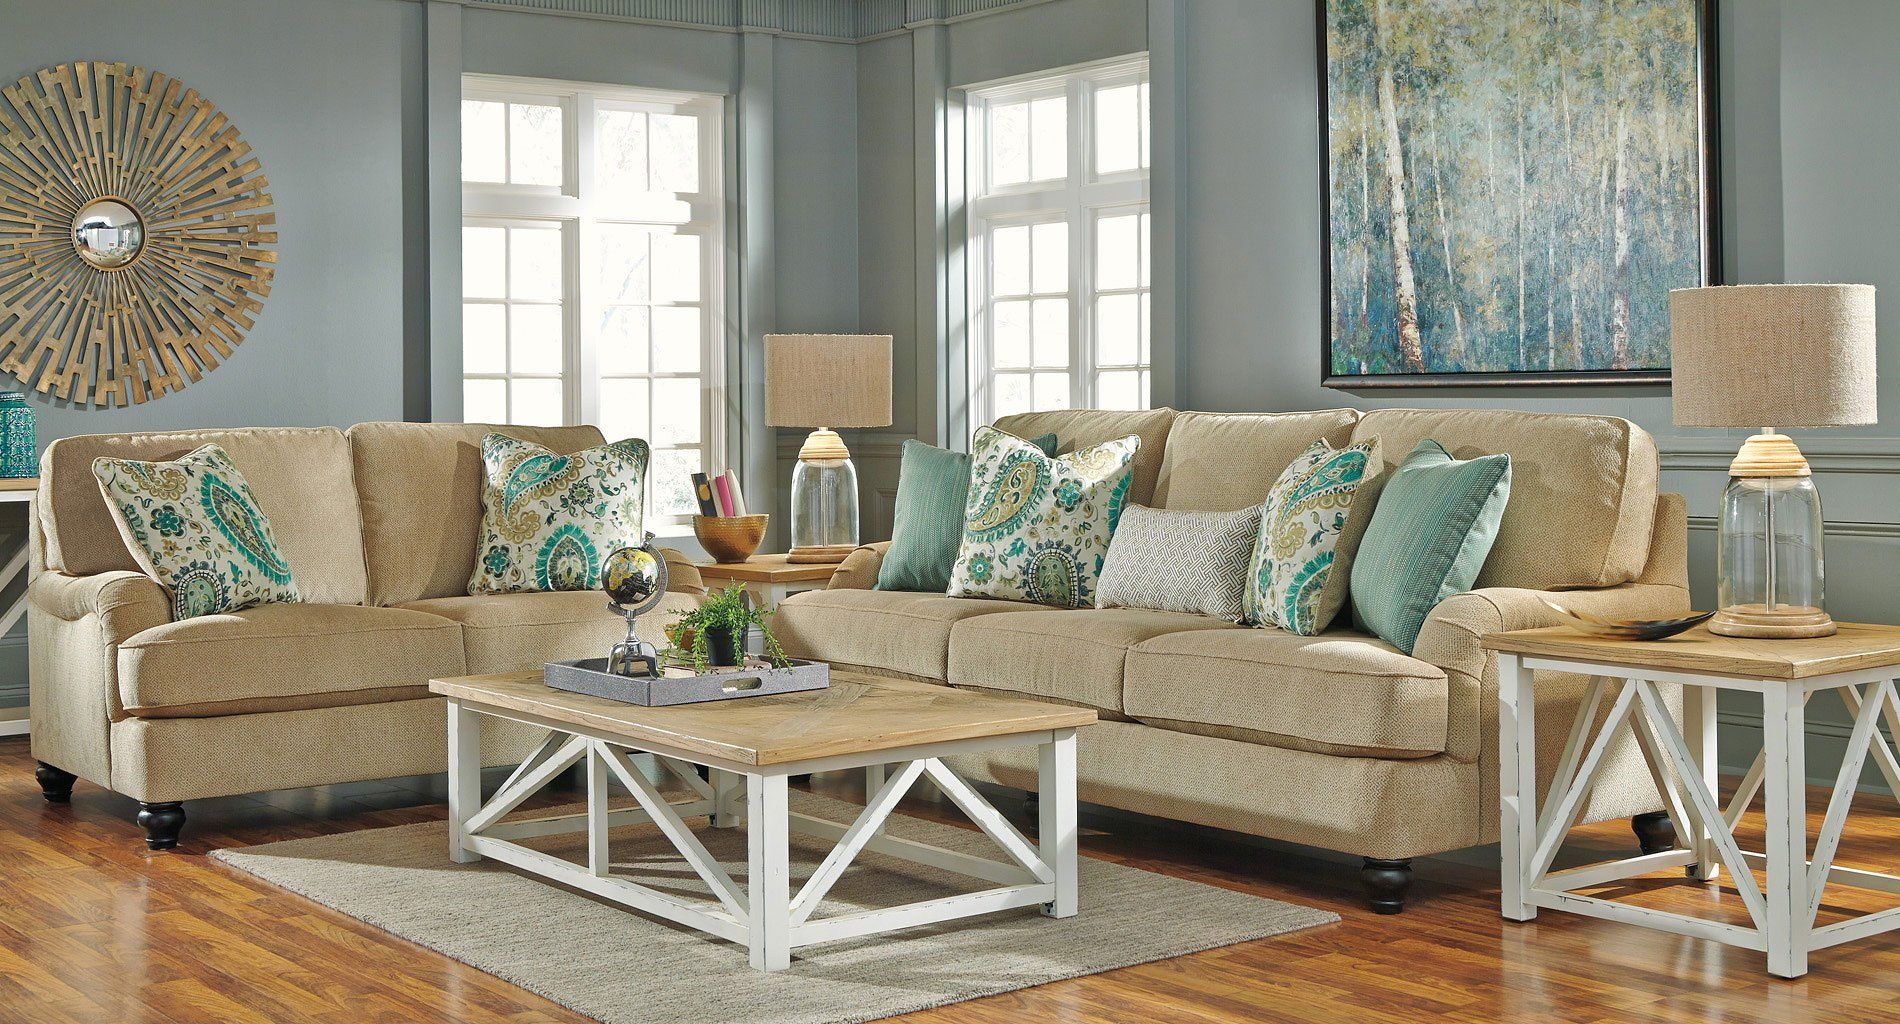 Pops Of Paisley And Cool On Trend Hues Lend Lochian S Living Room Set By Benchcra Coastal Style Living Room Coastal Living Room Furniture Coastal Living Rooms Paisley couch living room furniture